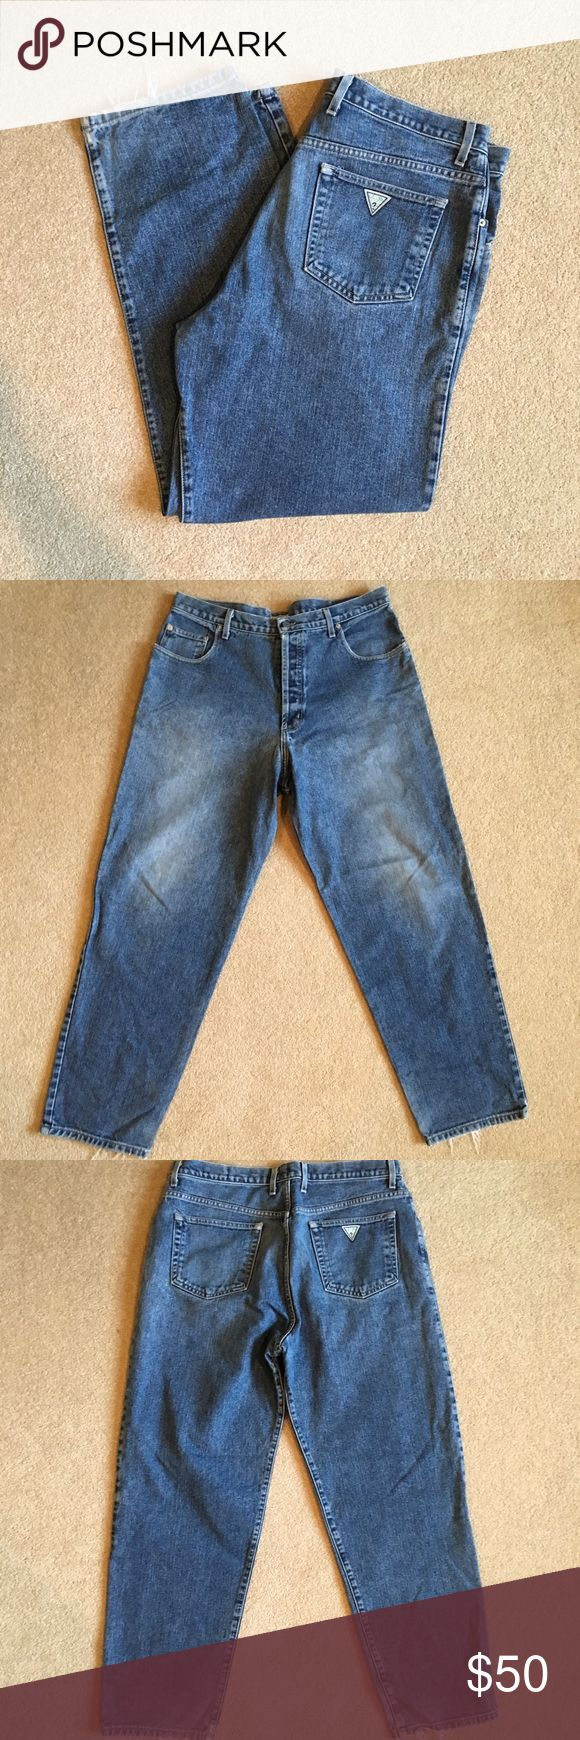 """Vintage Guess Jeans. Men's 36/34 Vintage Guess Jeans. Men's 36/34. Check measurements for an accurate fit. Made in USA. Bottoms have been frayed from wear. Overall great condition!  Measurements: Waist: 18"""" Length: 43"""" Inseam: 32"""" Guess by Marciano Jeans Relaxed"""